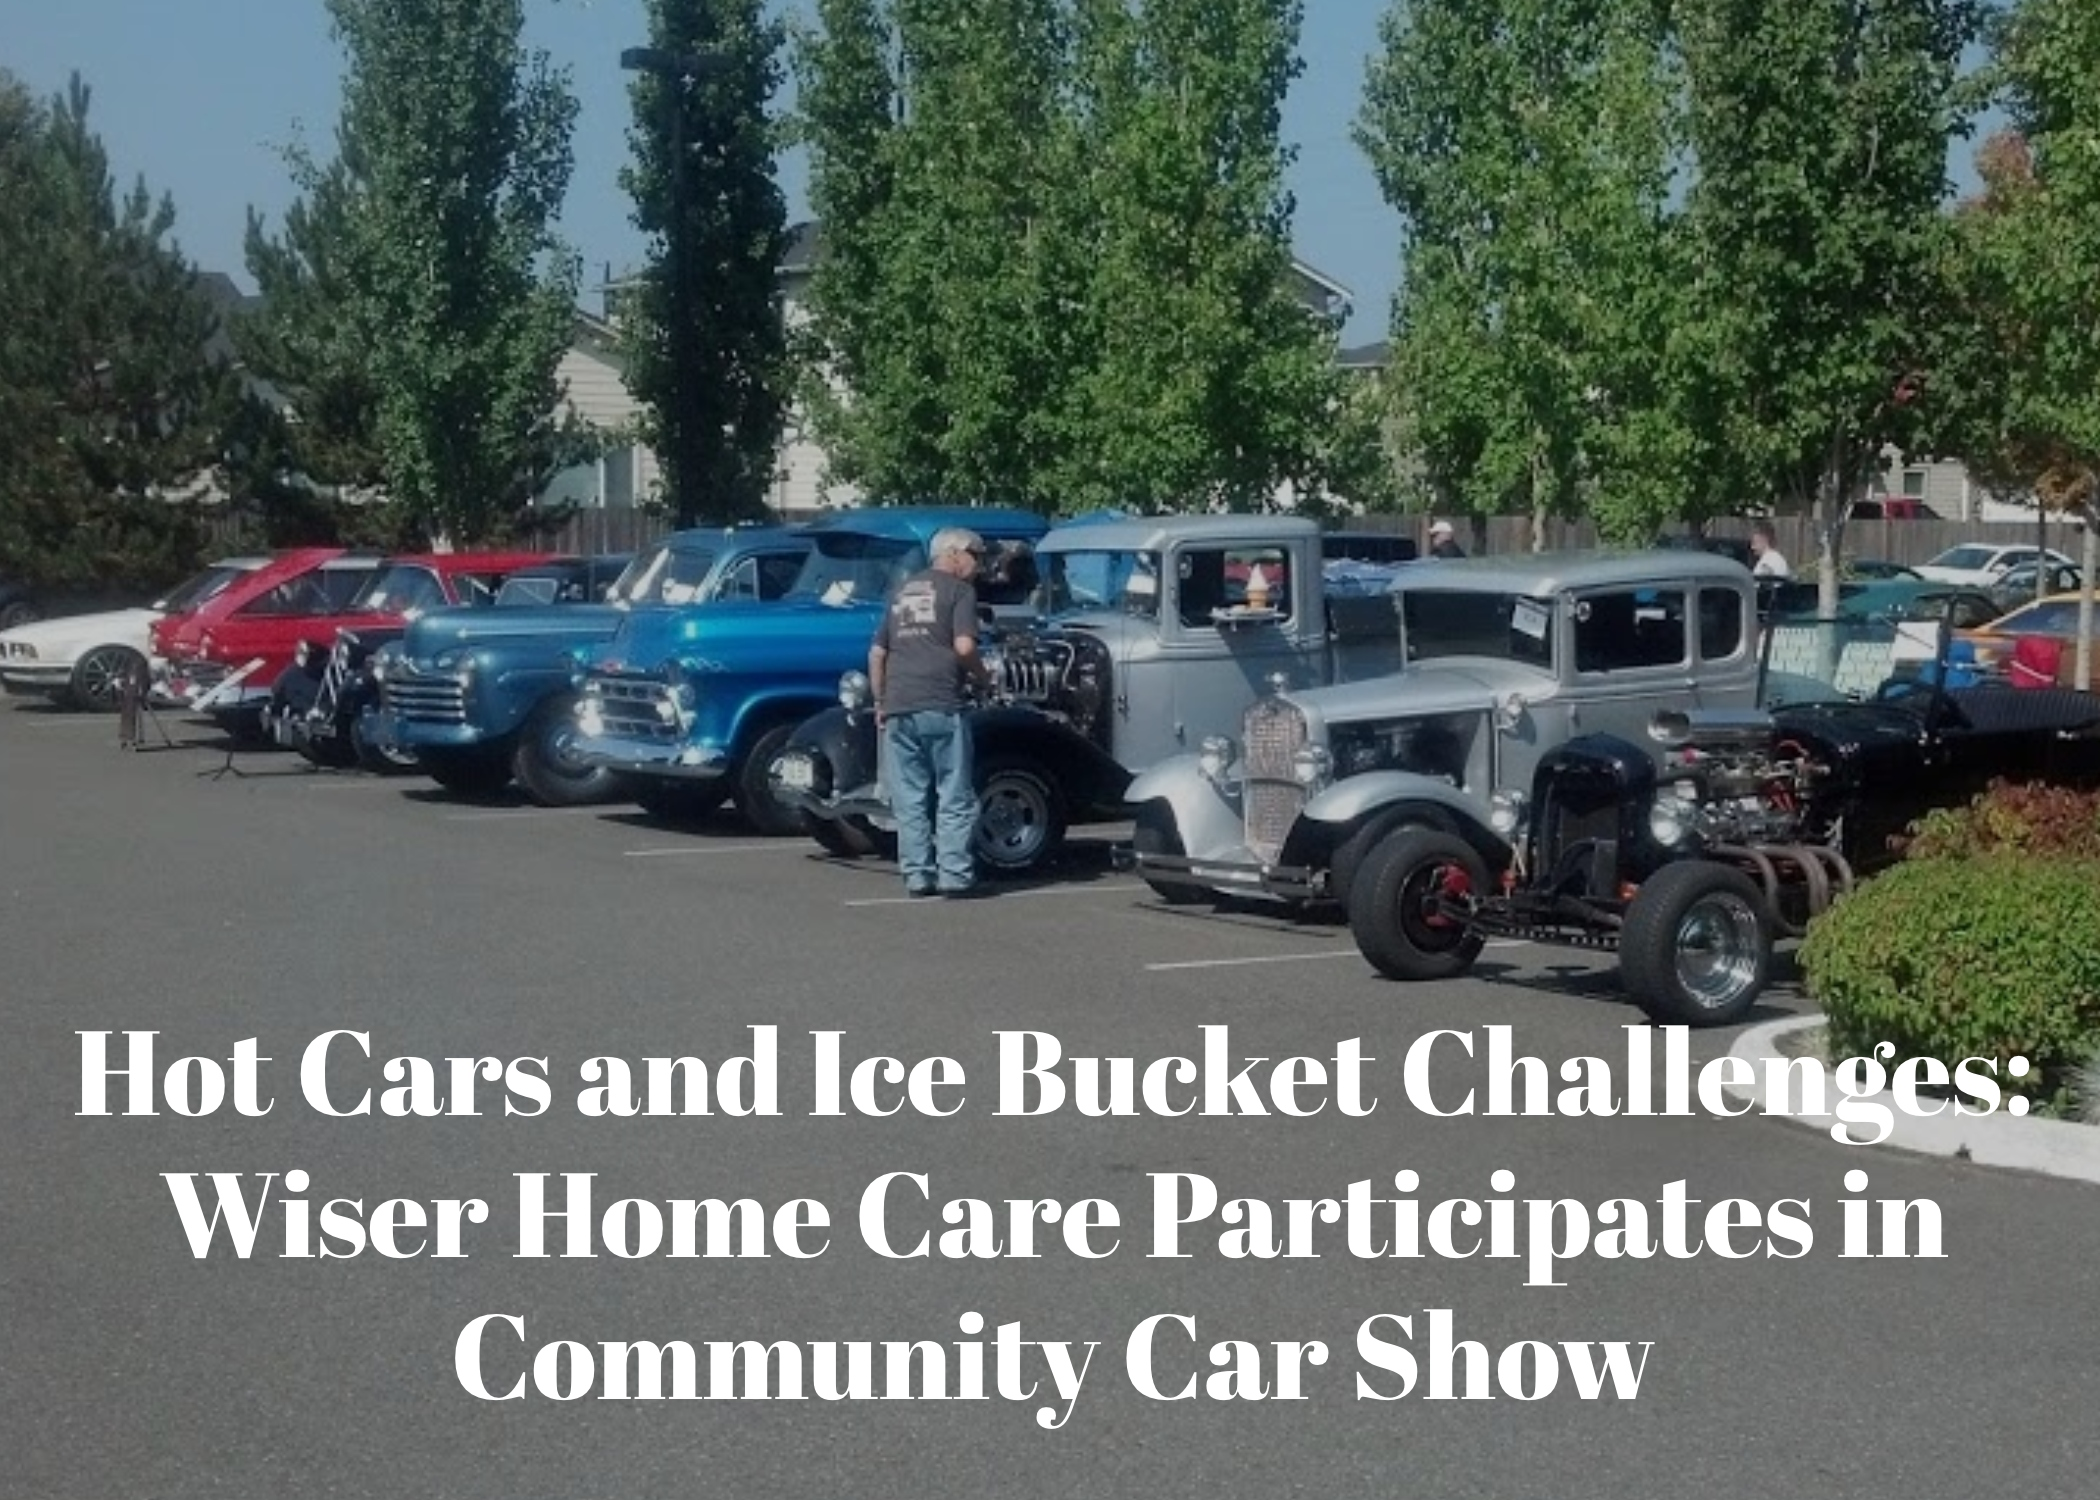 Hot Cars and Ice Bucket Challenges: Wiser Home Care Participates in Community Car Show